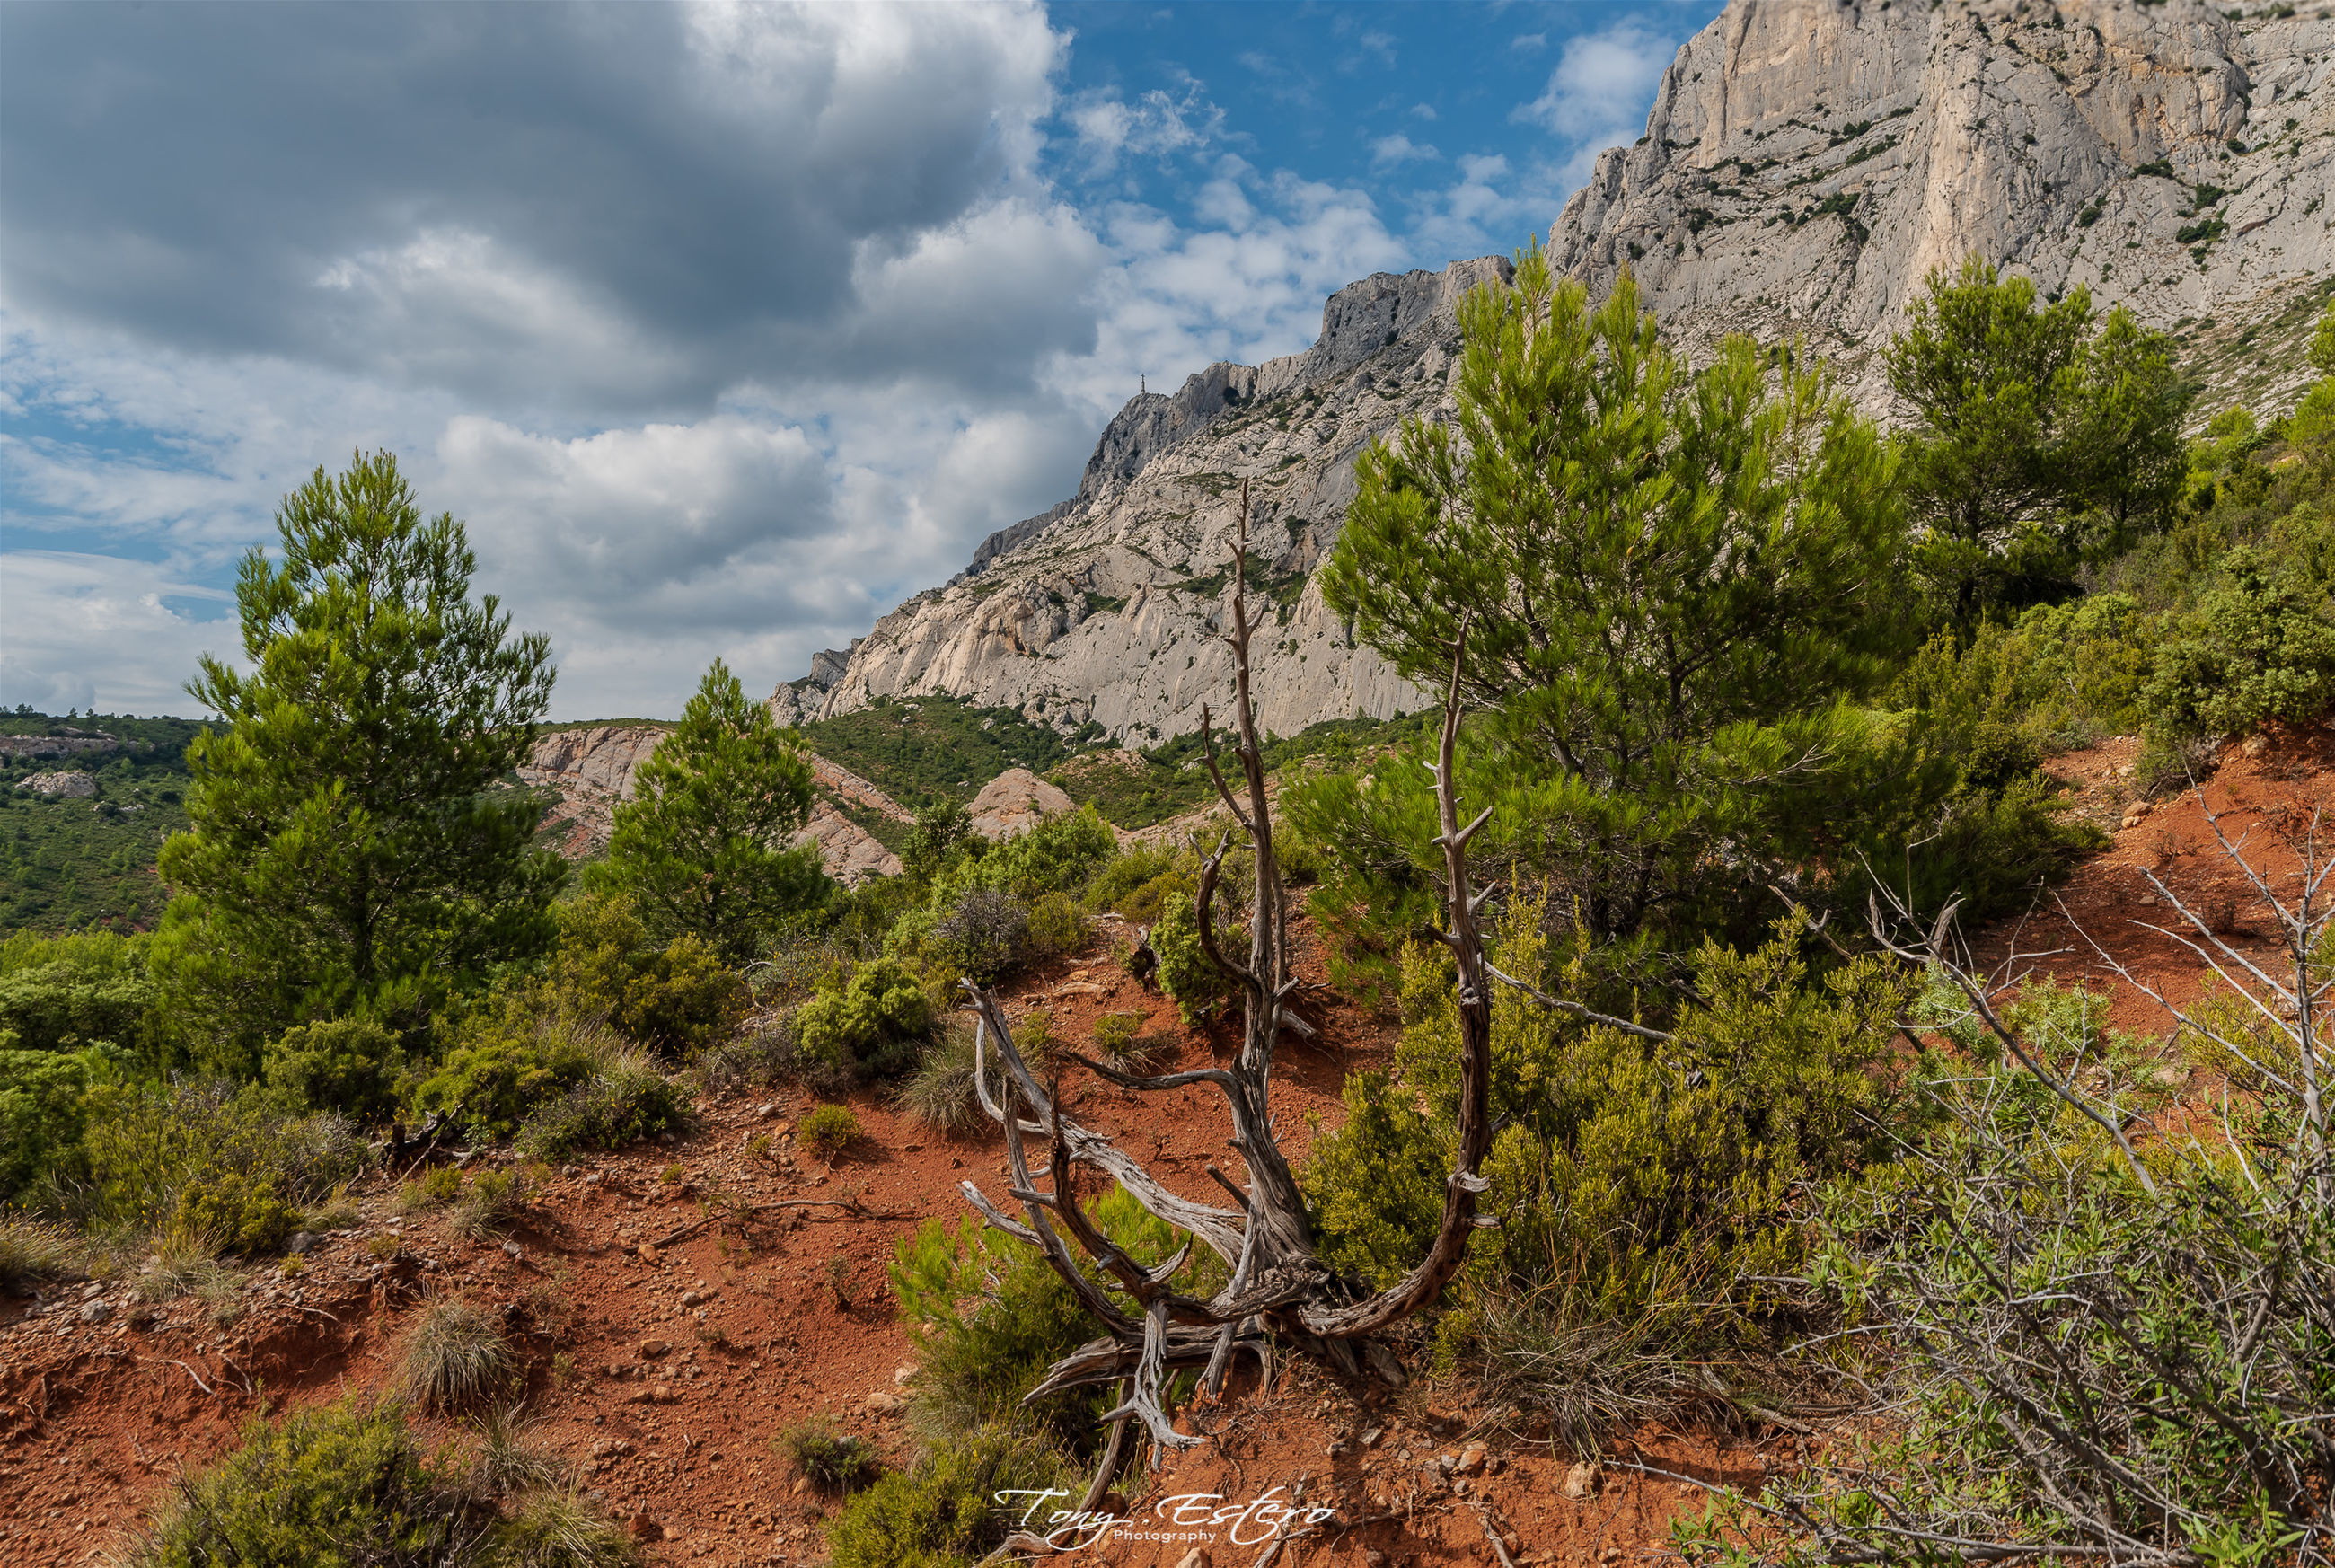 plant, cloud - sky, sky, mountain, beauty in nature, tranquil scene, tree, scenics - nature, landscape, non-urban scene, tranquility, nature, environment, day, no people, land, rock, growth, rock - object, remote, outdoors, formation, arid climate, mountain peak